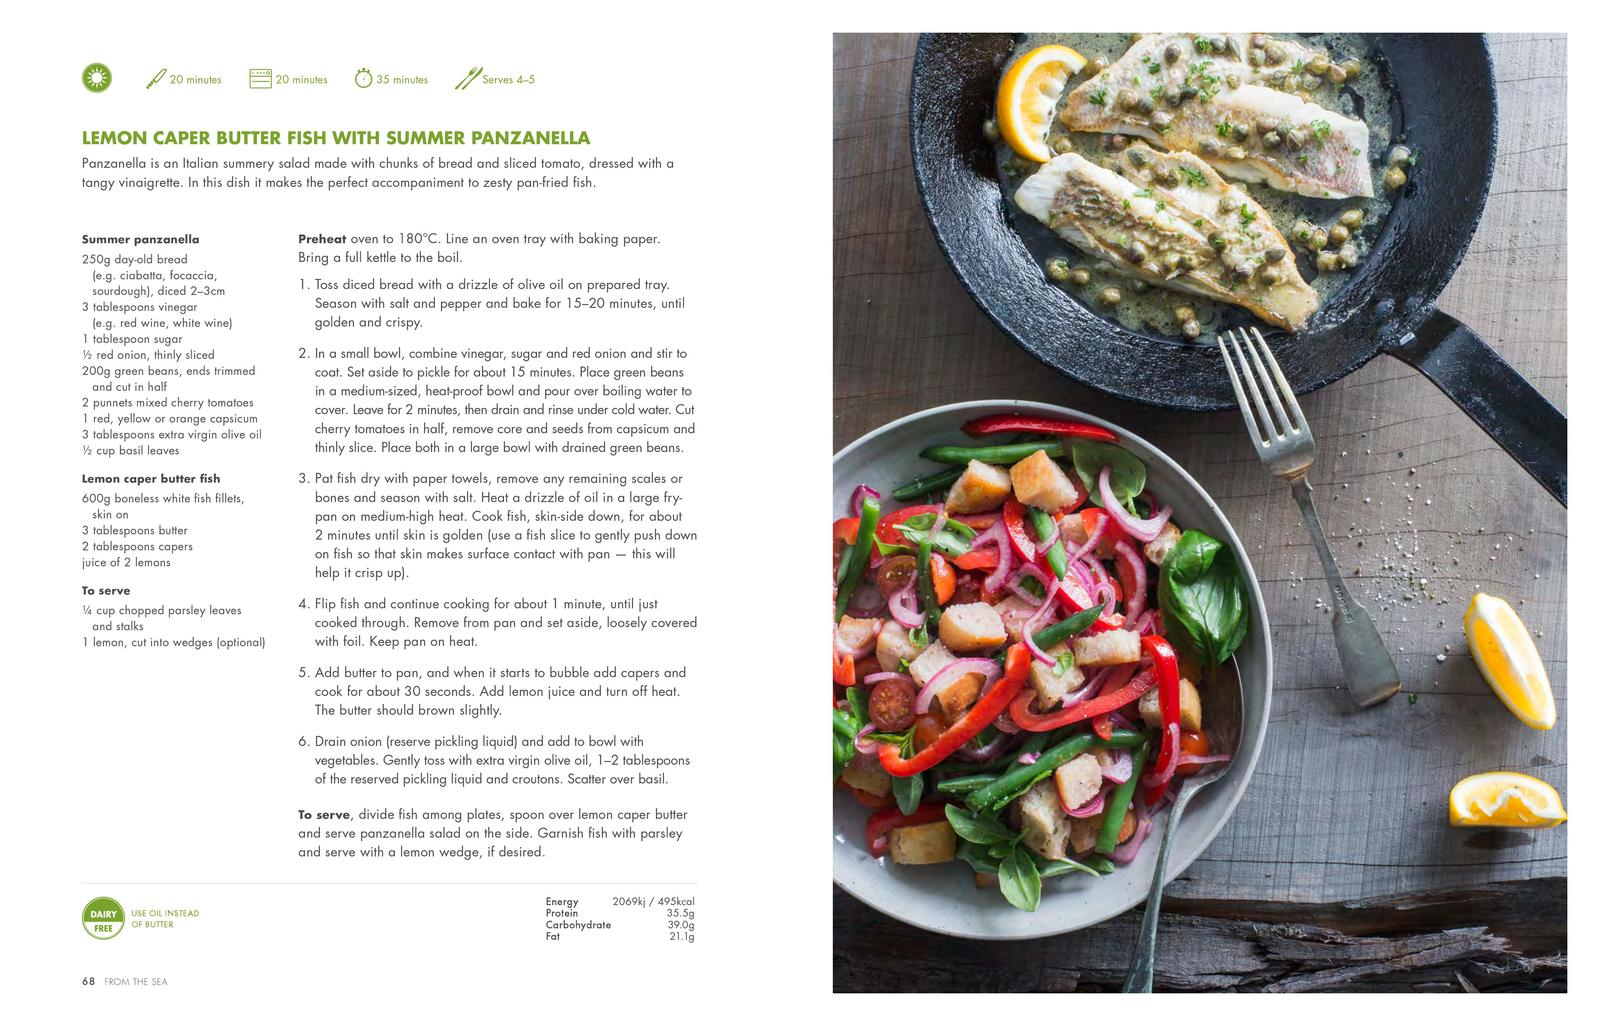 Dinnertime goodness nadia lim book in stock buy now at dinnertime goodness by nadia lim image forumfinder Images